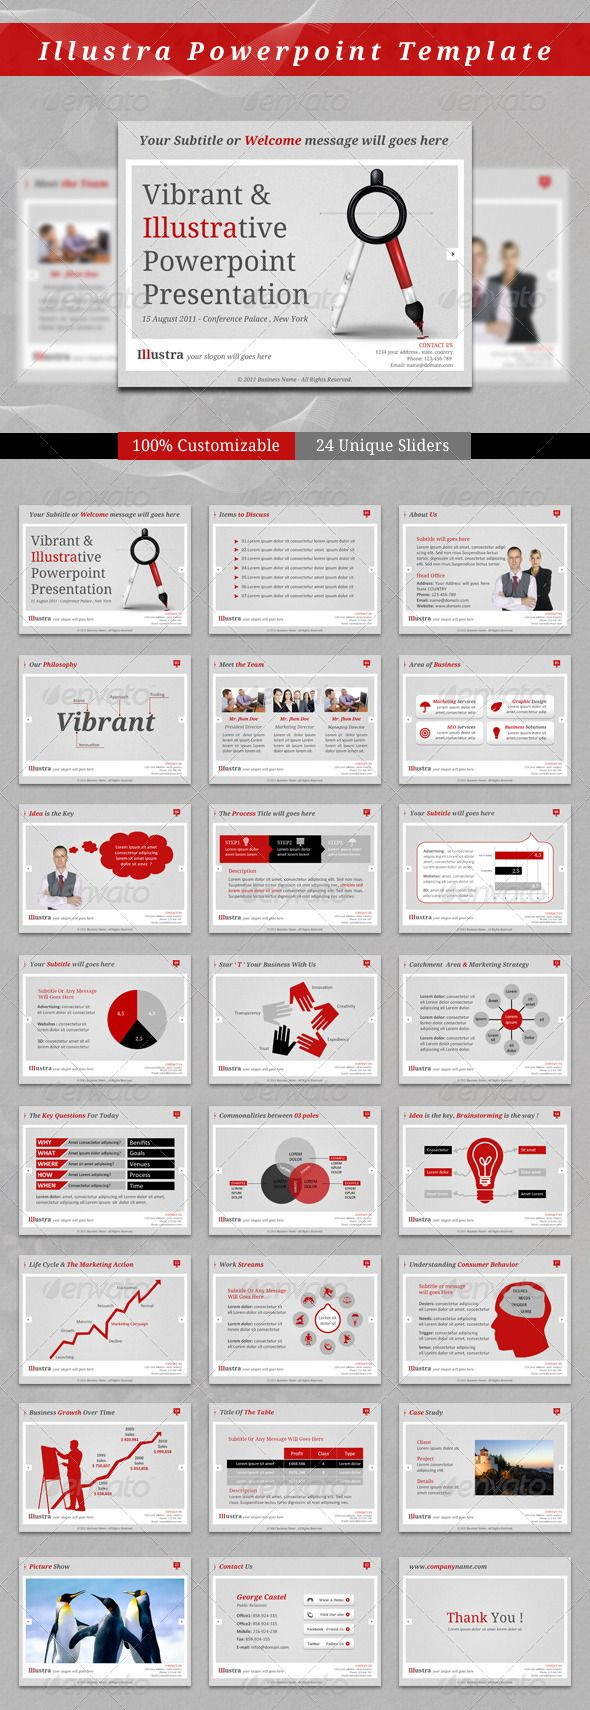 business case powerpoint template choice image - templates example, Presentation templates